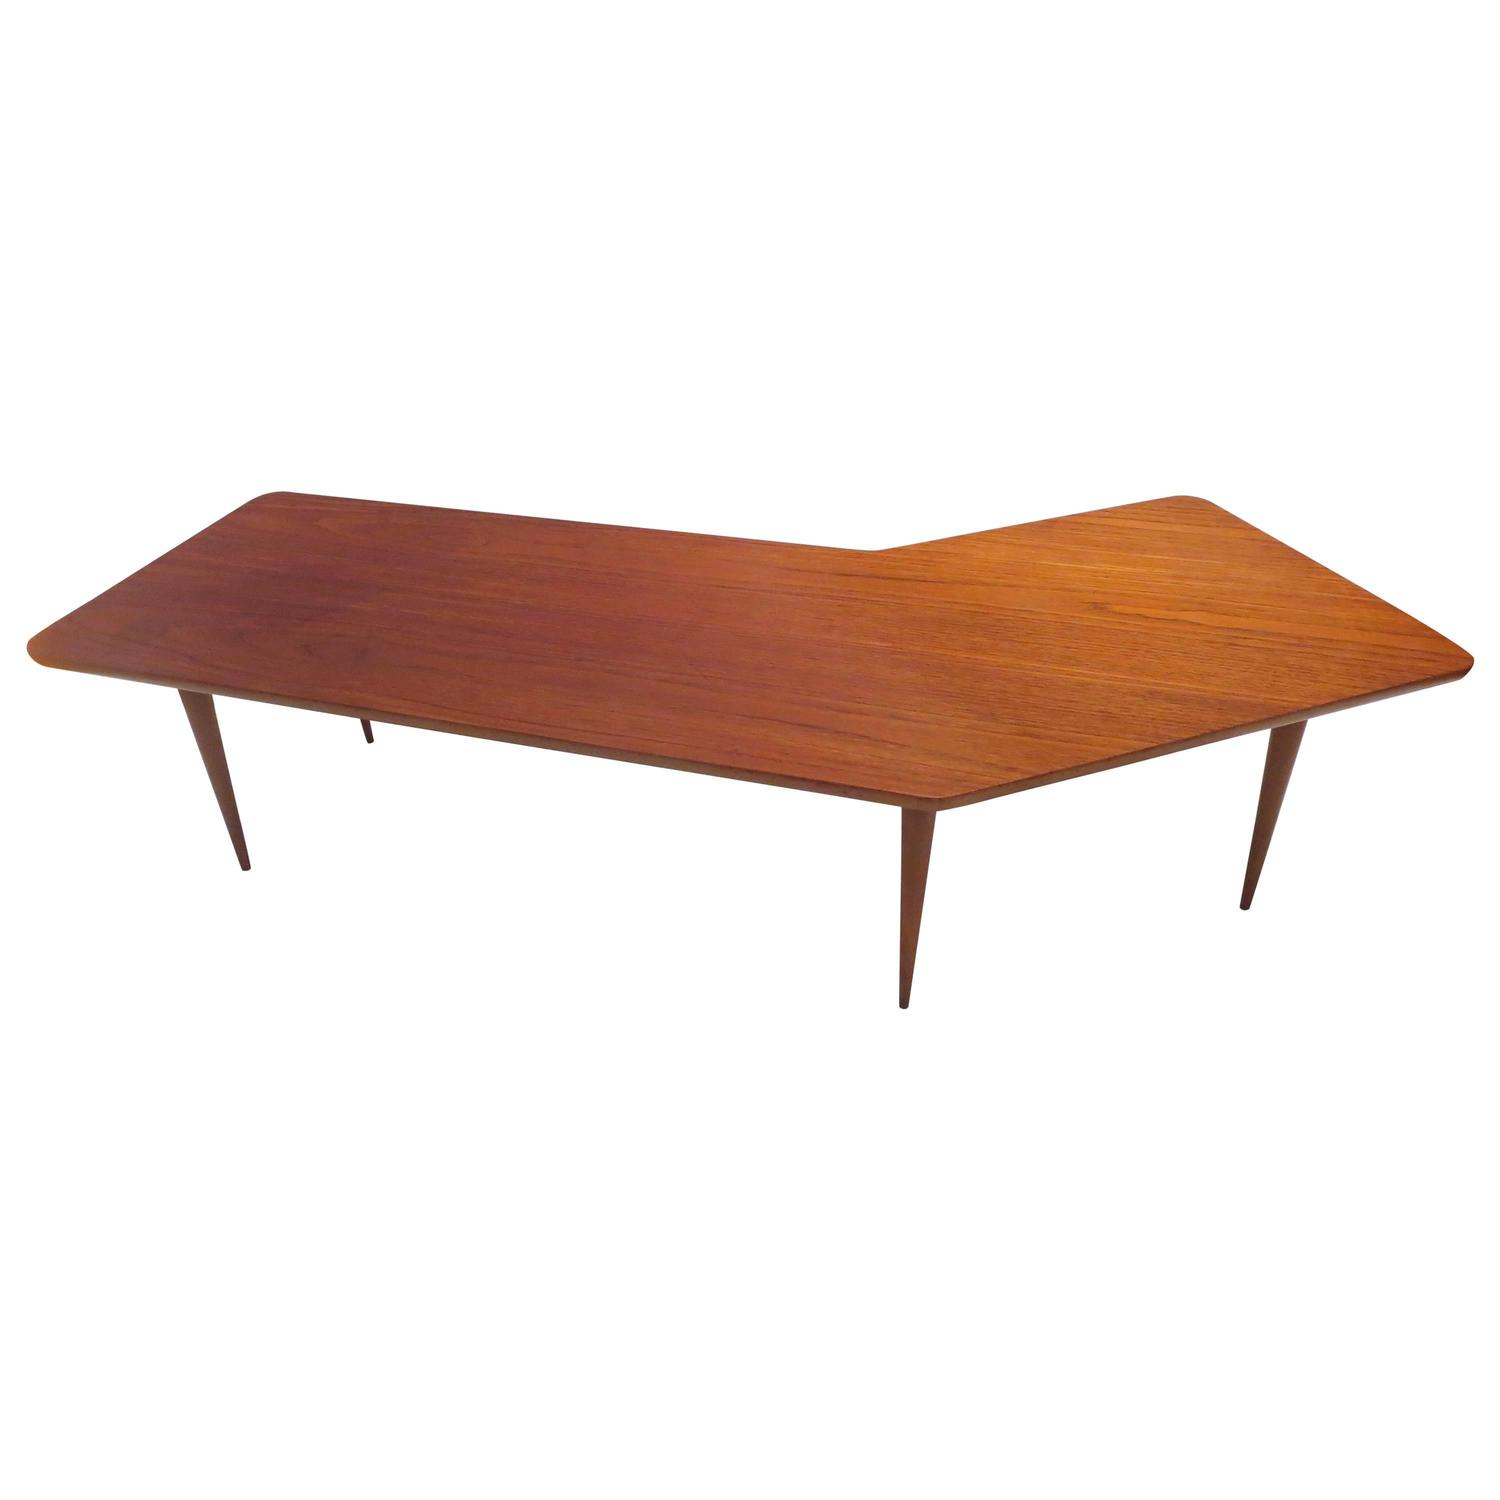 Mid Century Danish Modern Teak Coffee Table by DUX For Sale at 1stdibs